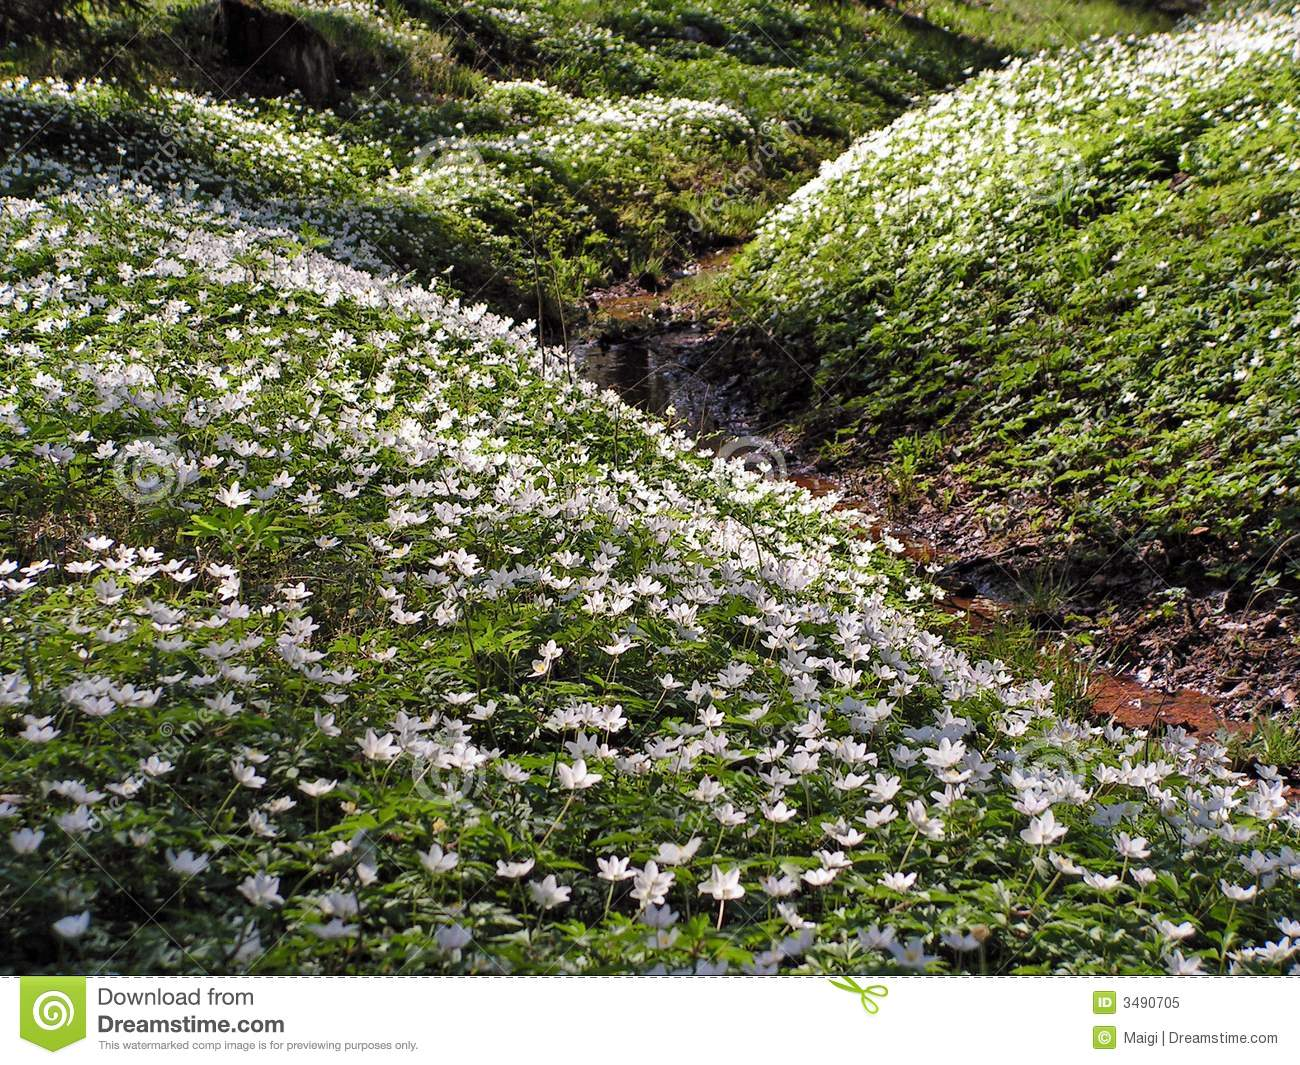 Wildflowers on slopes